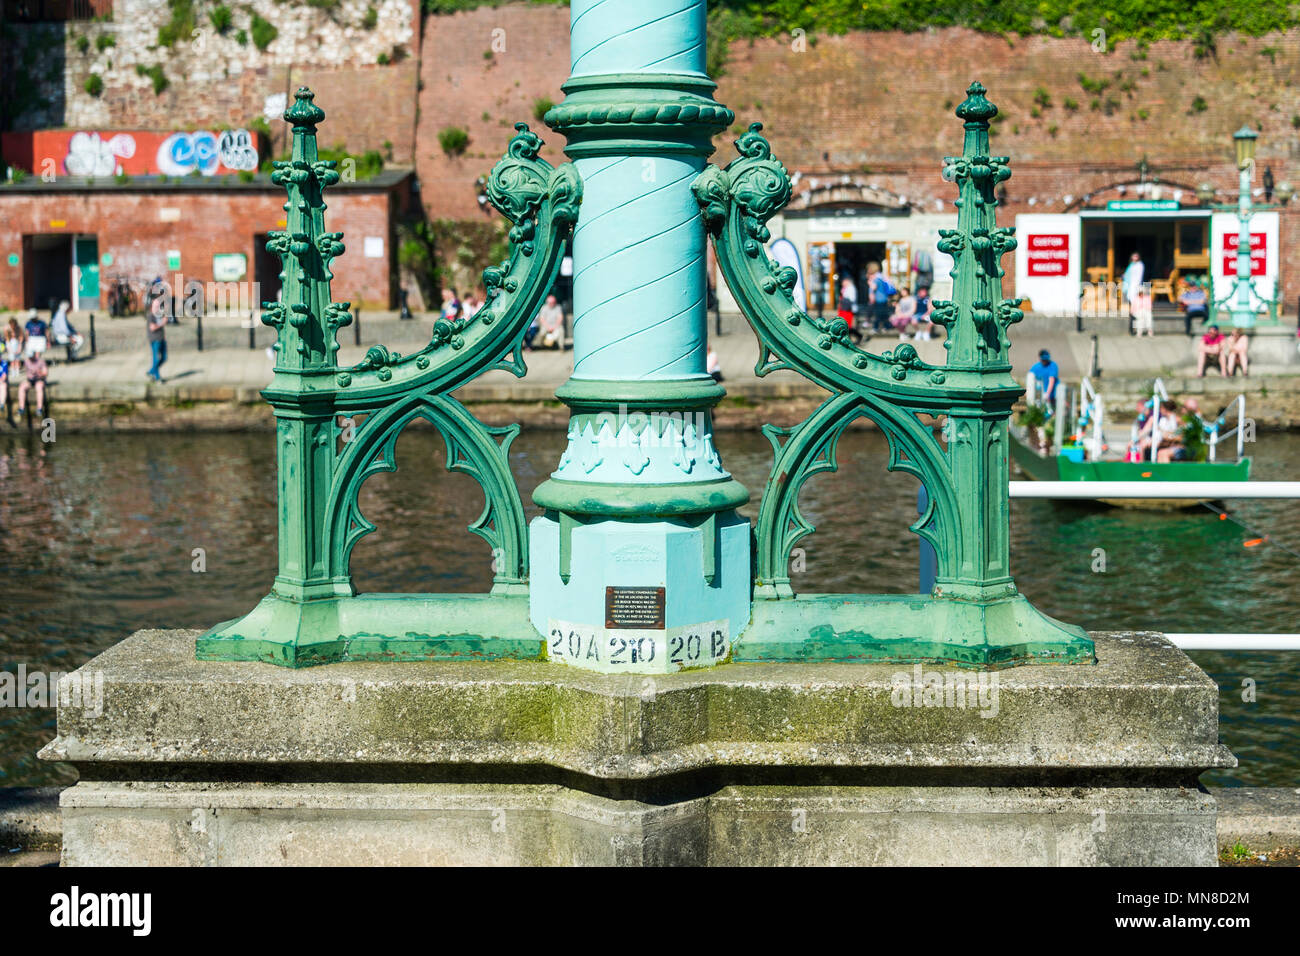 The base of an ornamental lamp standard that was preserved from the 1905 Exe Bridge.  It was cast by Macfarlanes of Glasgow. Stock Photo